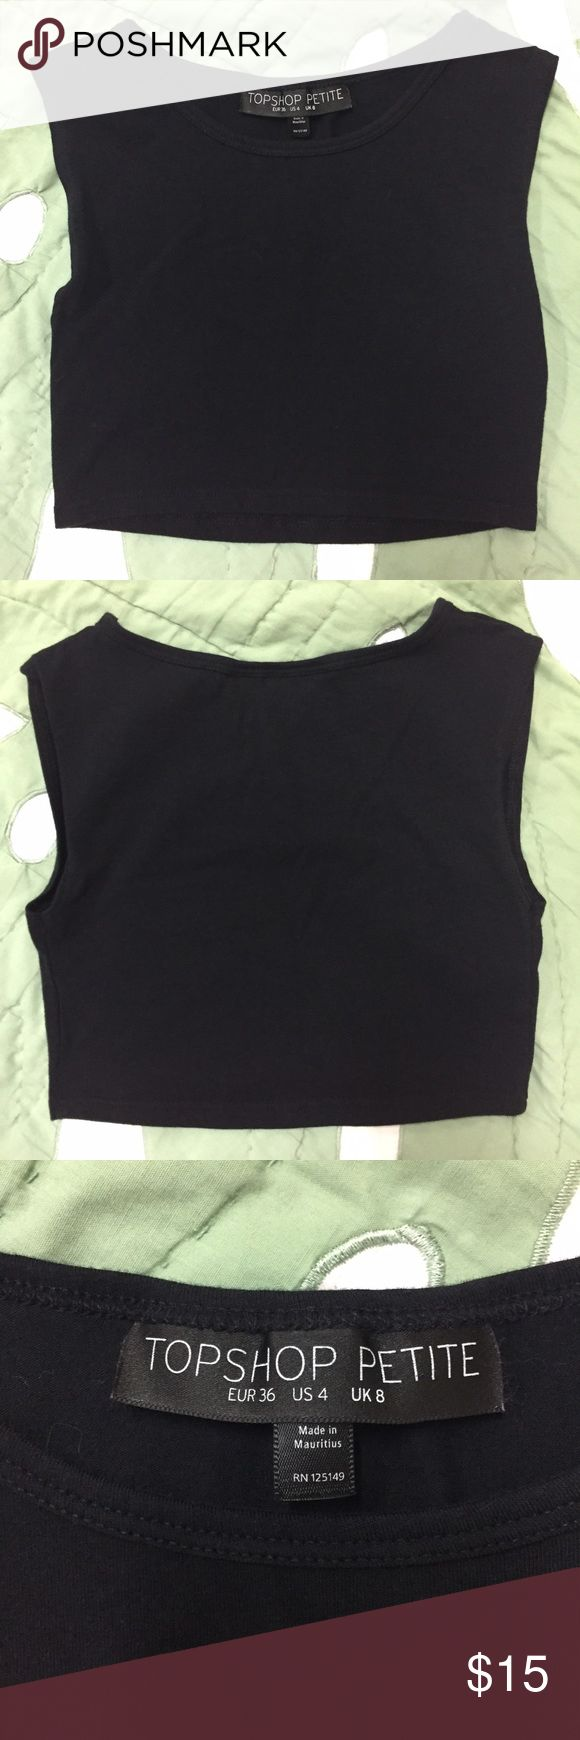 """Topshop Petite Cropped Muscle Tank in Black Worn only once. Topshop Petite cropped muscle tank in black. Approx. 11.5"""" from shoulder to hem, hits me right below the bust. In excellent condition, no rips, stains, or defects. A great basic for any closet! US size 4, but best fits an XS. 💛 Topshop PETITE Tops Crop Tops"""